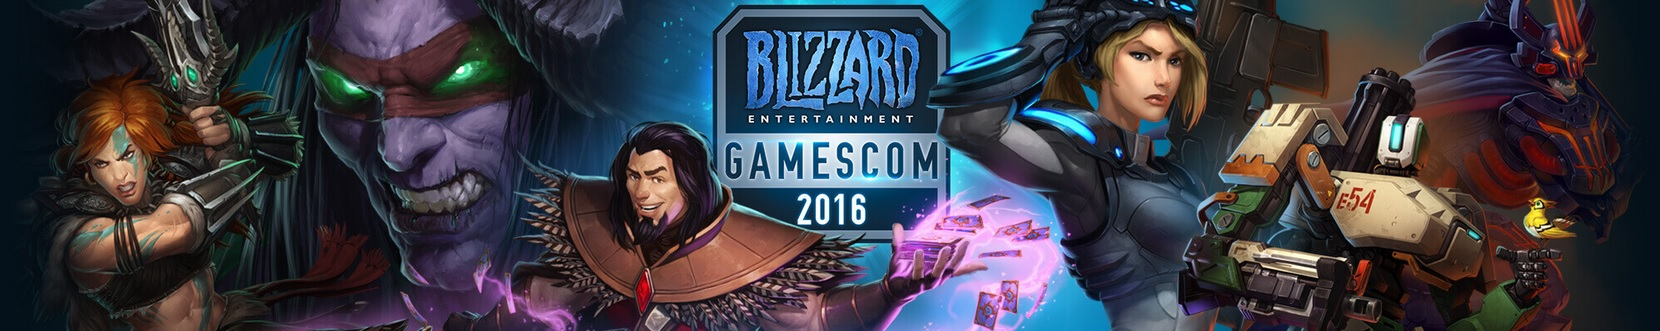 Blizzard Gamescon 2016